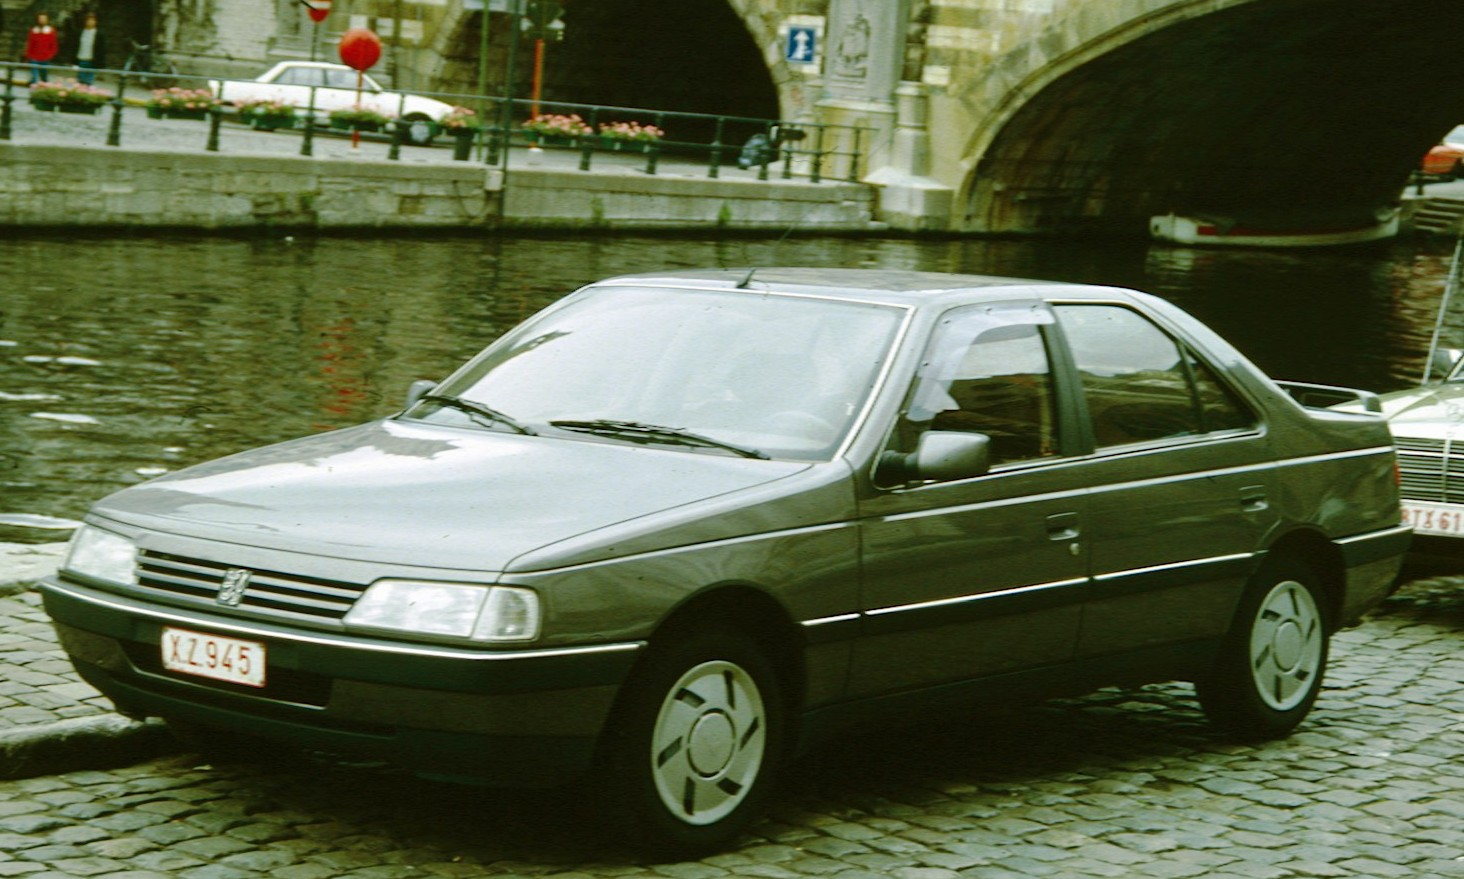 File:Peugeot 405 with canal in Belgium.jpg